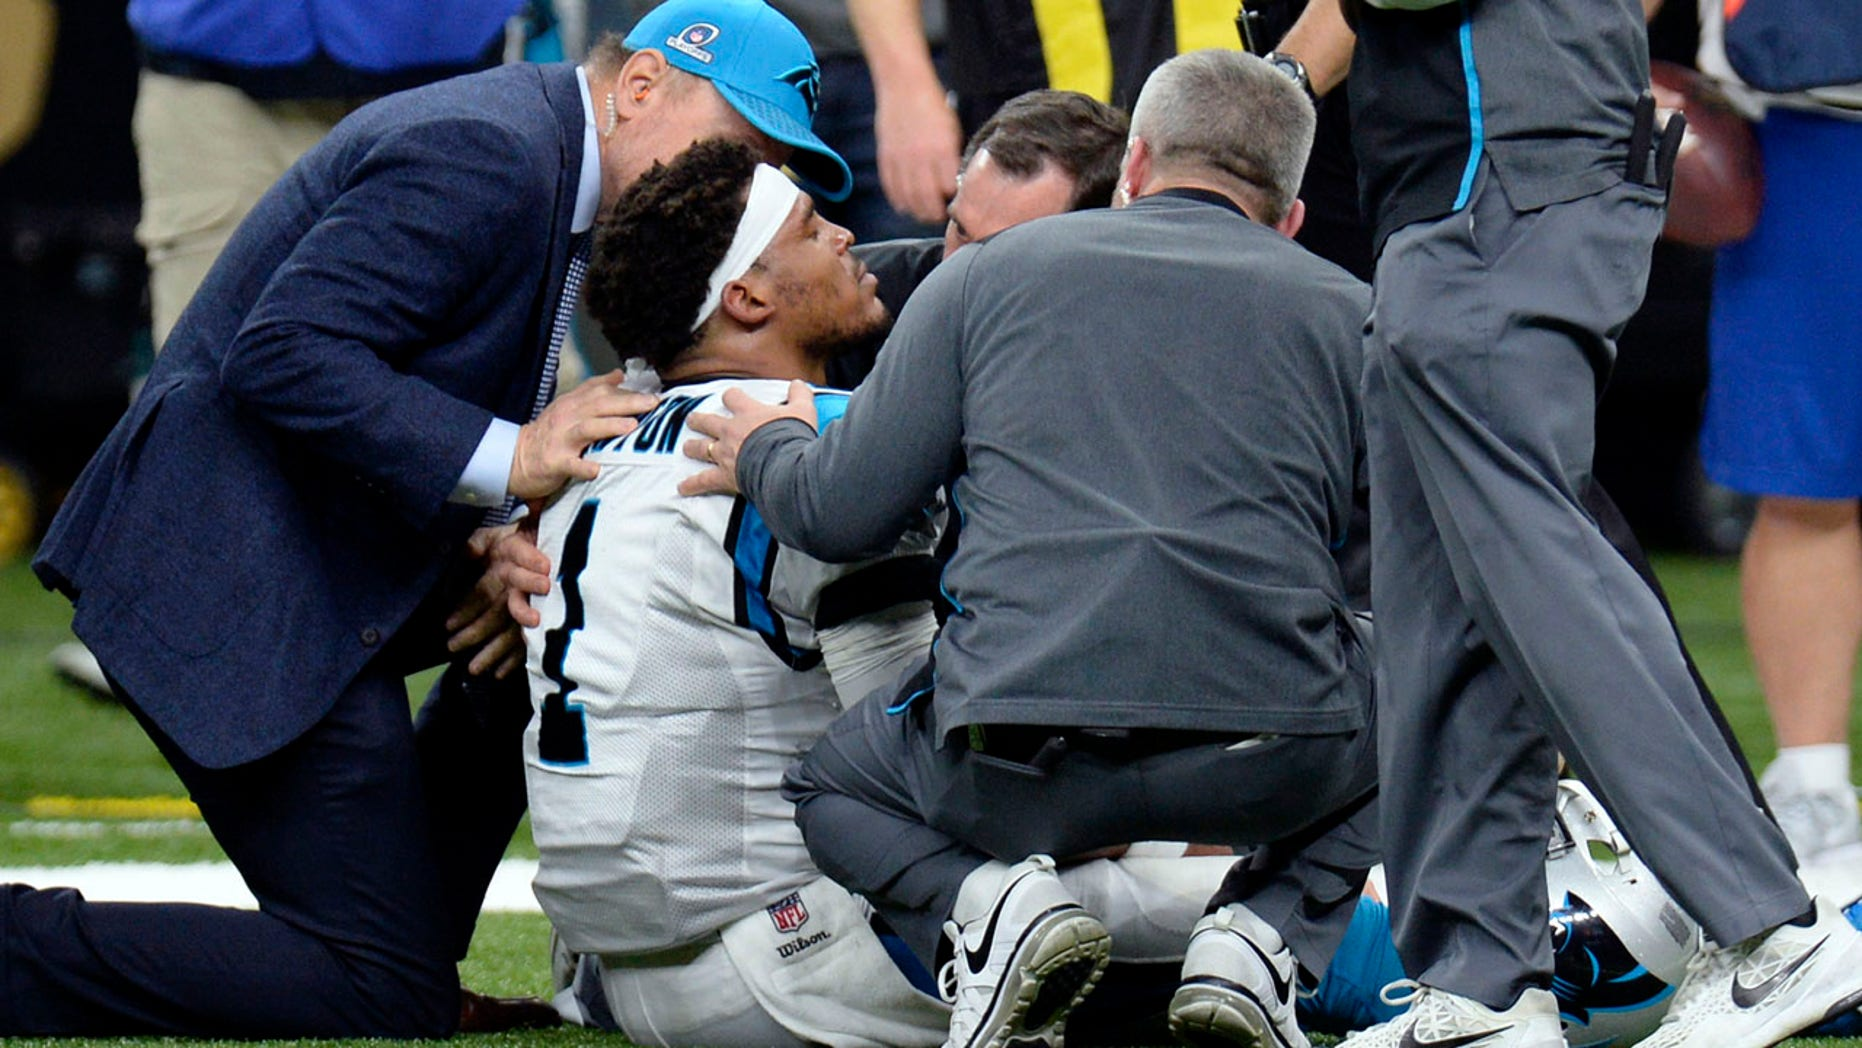 Jan. 7: Cam Newton is tended to by medical personnel after being sacked in the second half against the New Orleans Saints in New Orleans